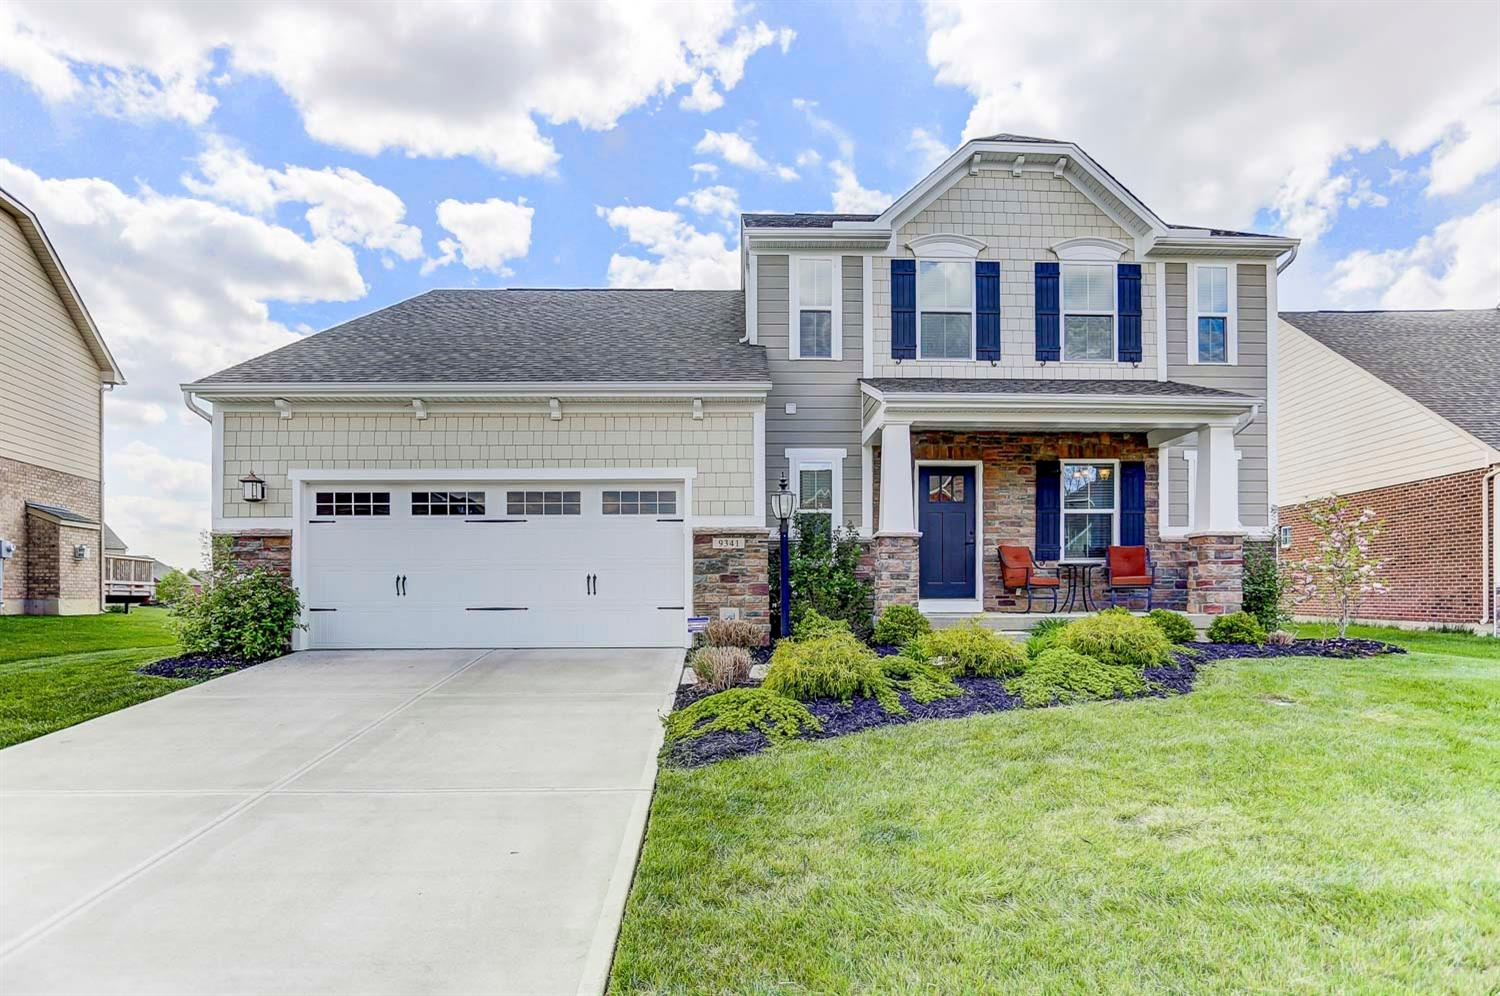 9341 Maple Brook St Clear Creek Twp., OH